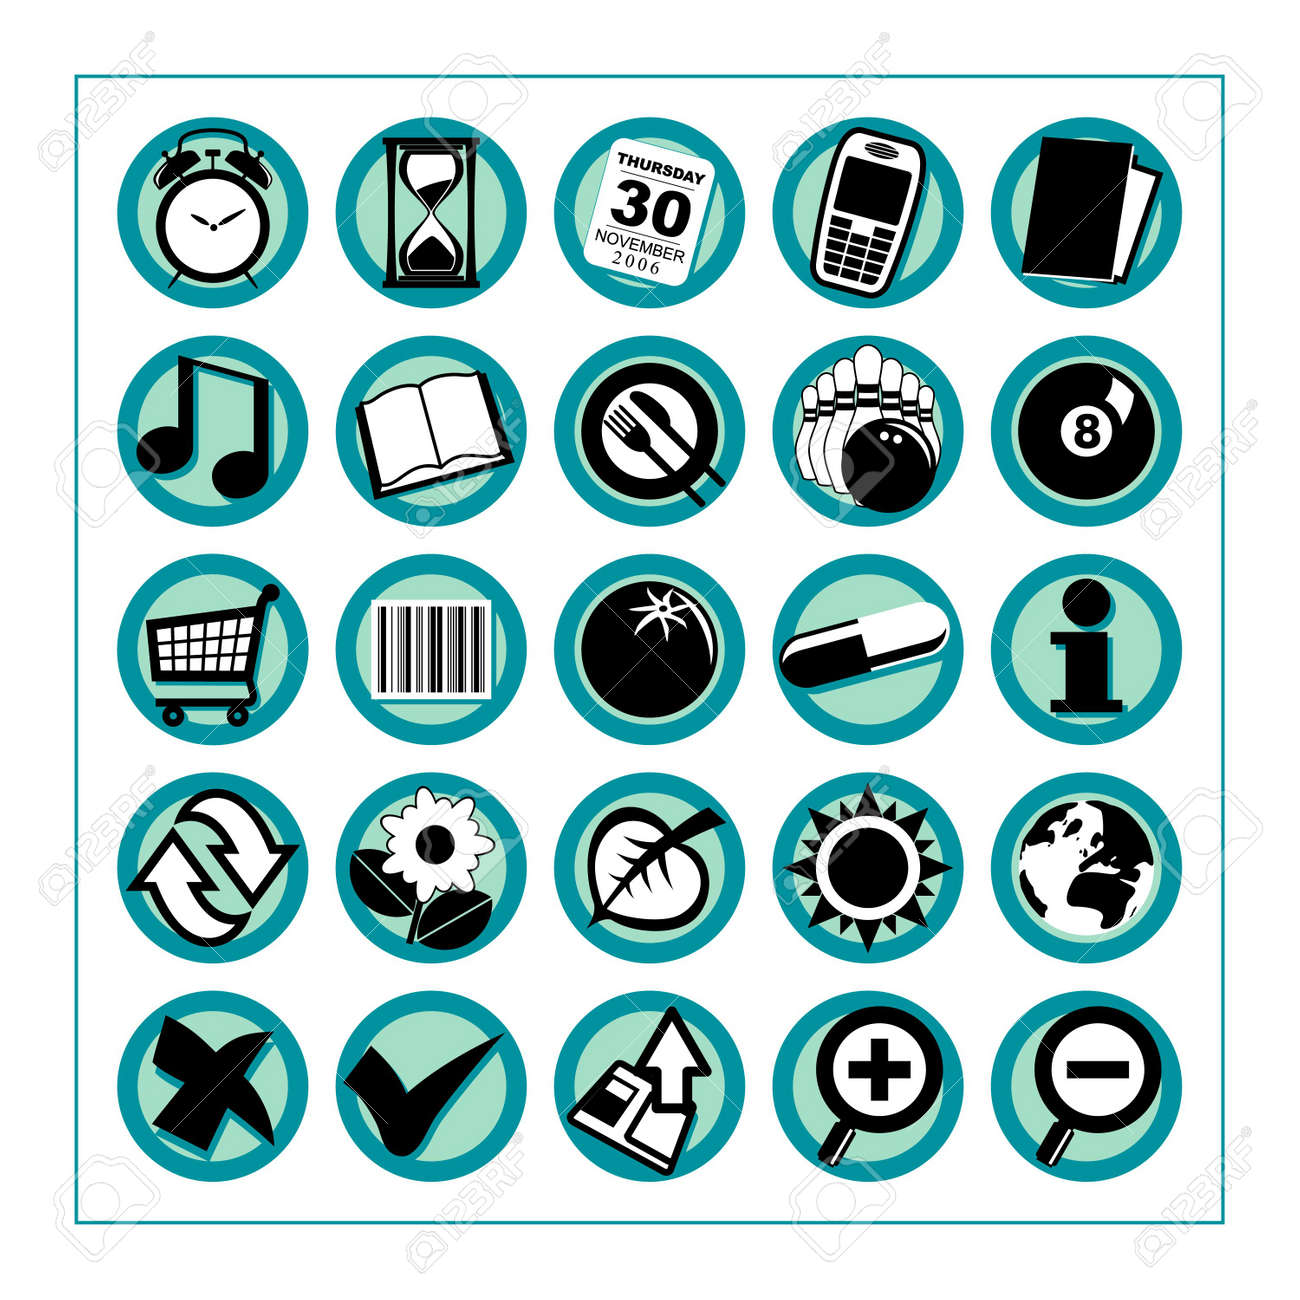 Useful Icons 2 - Version 1: Collection of 25 different useful icons #2 - Version 1. Please check other versions and sets. Stock Photo - 271791